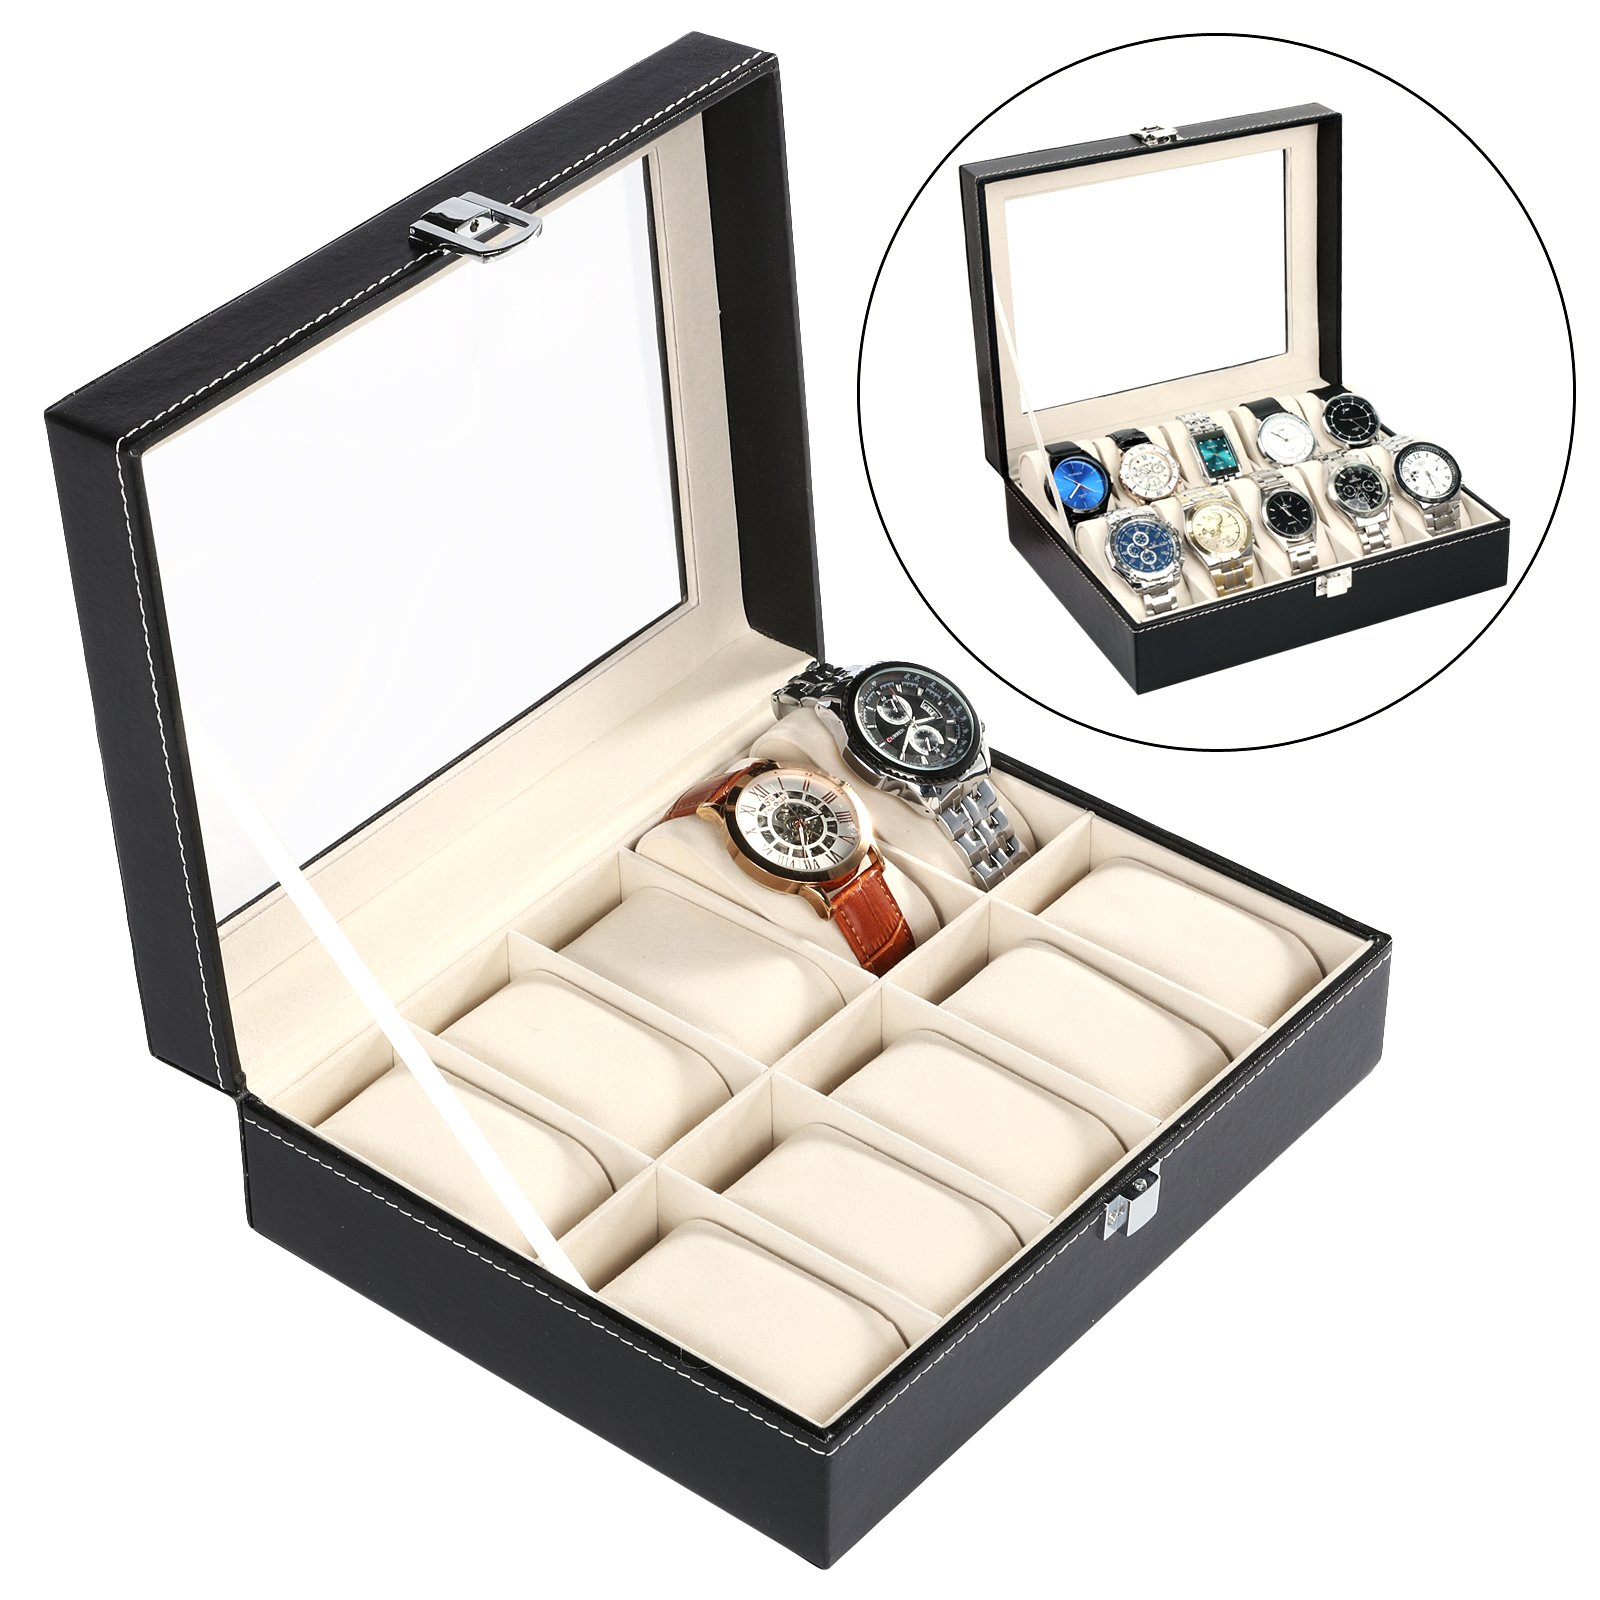 Homdox Watch Box 10 Mens Velvet Pillow Slots, Premium Display Case With Framed Glass Lid Faux Leather Organizer,Black, Sturdy & Secure Lock